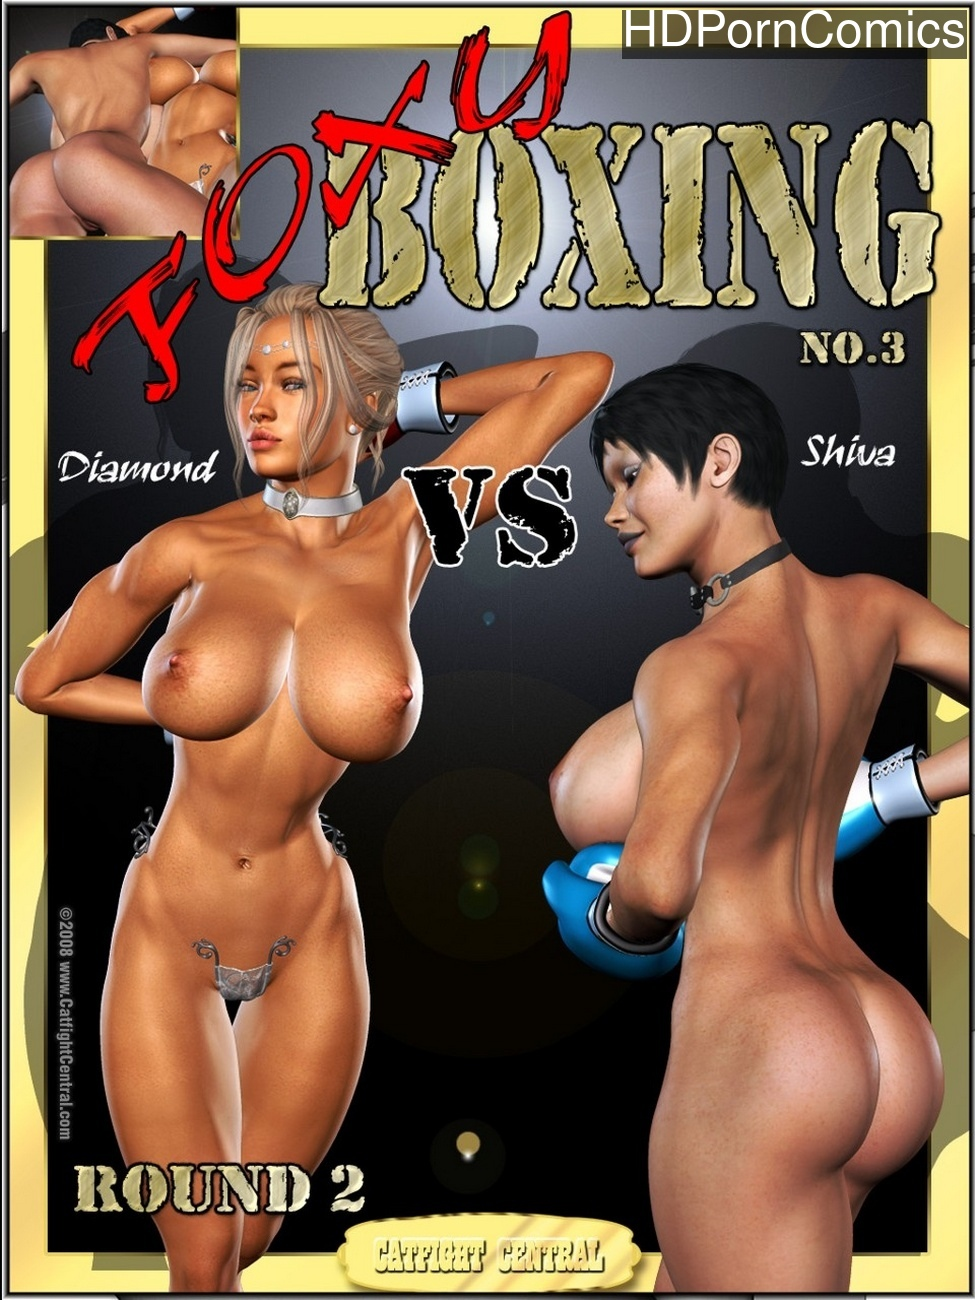 Foxy Boxing 3 – Diamond Vs Shiva – Round 2 comic porn